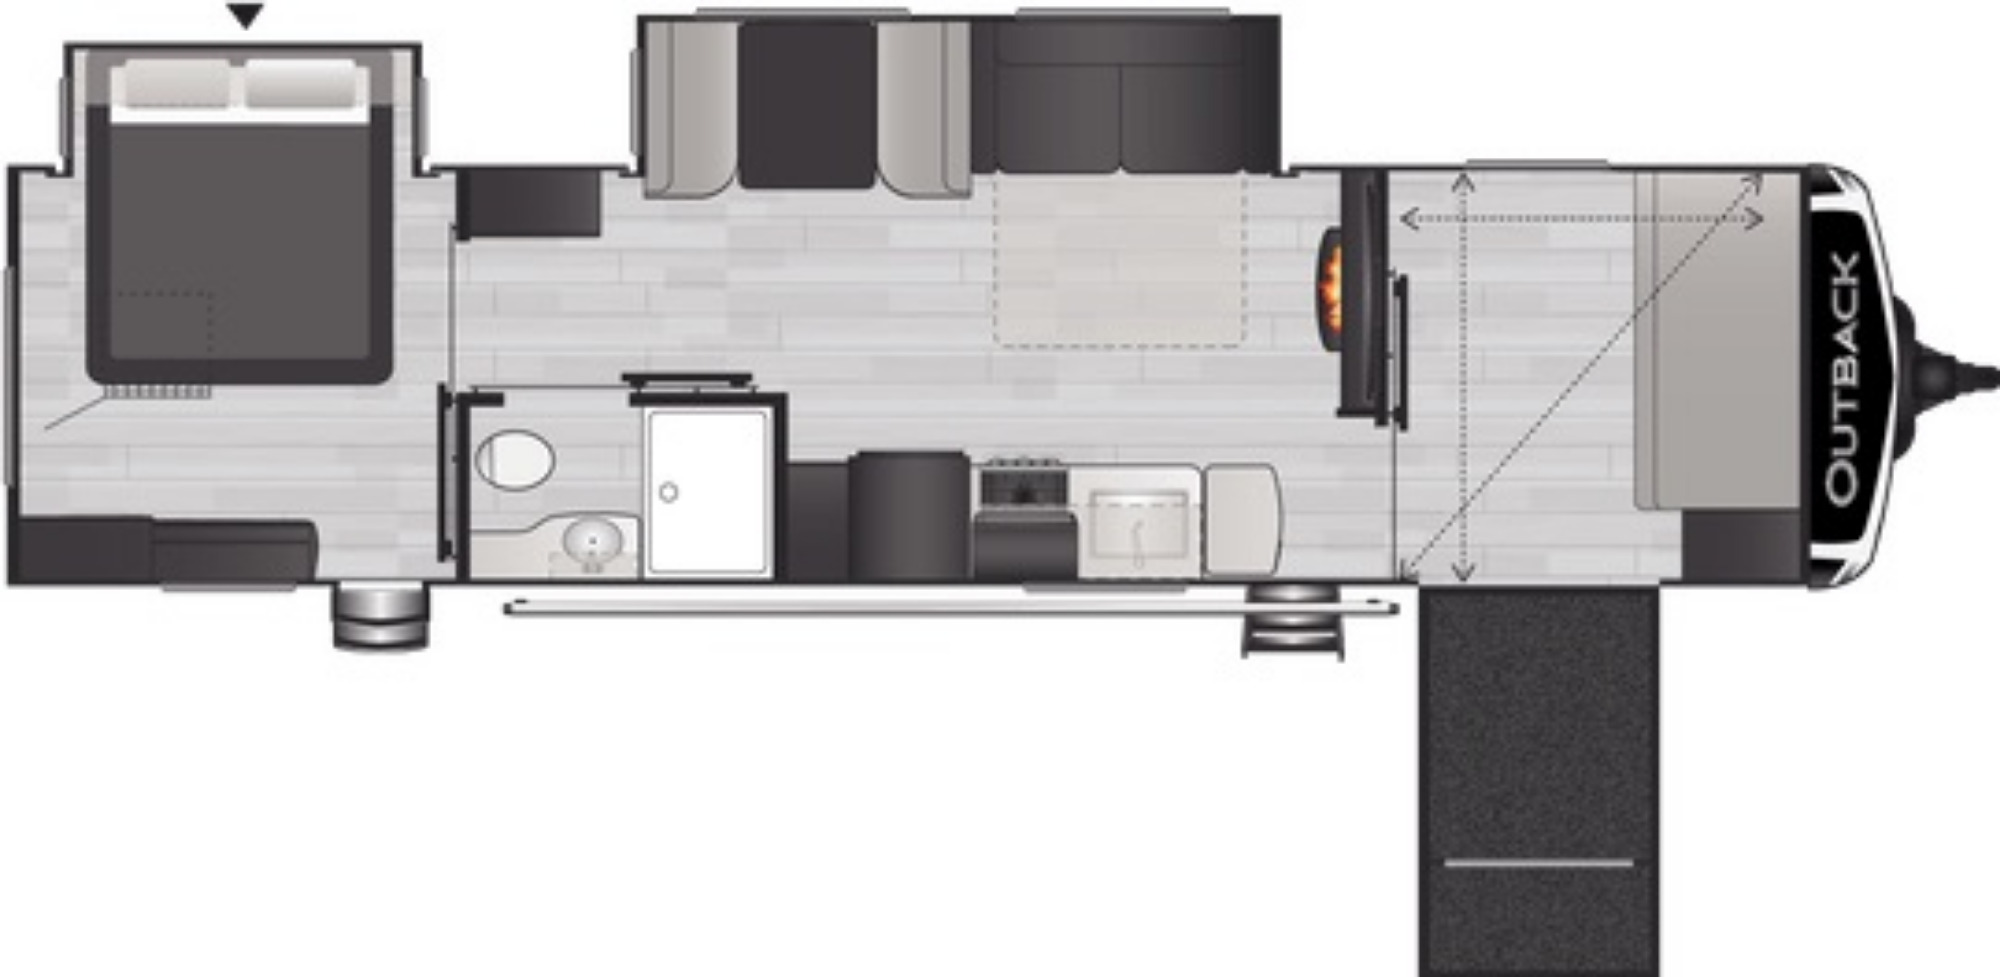 View Floor Plan for 2021 KEYSTONE OUTBACK 342CG